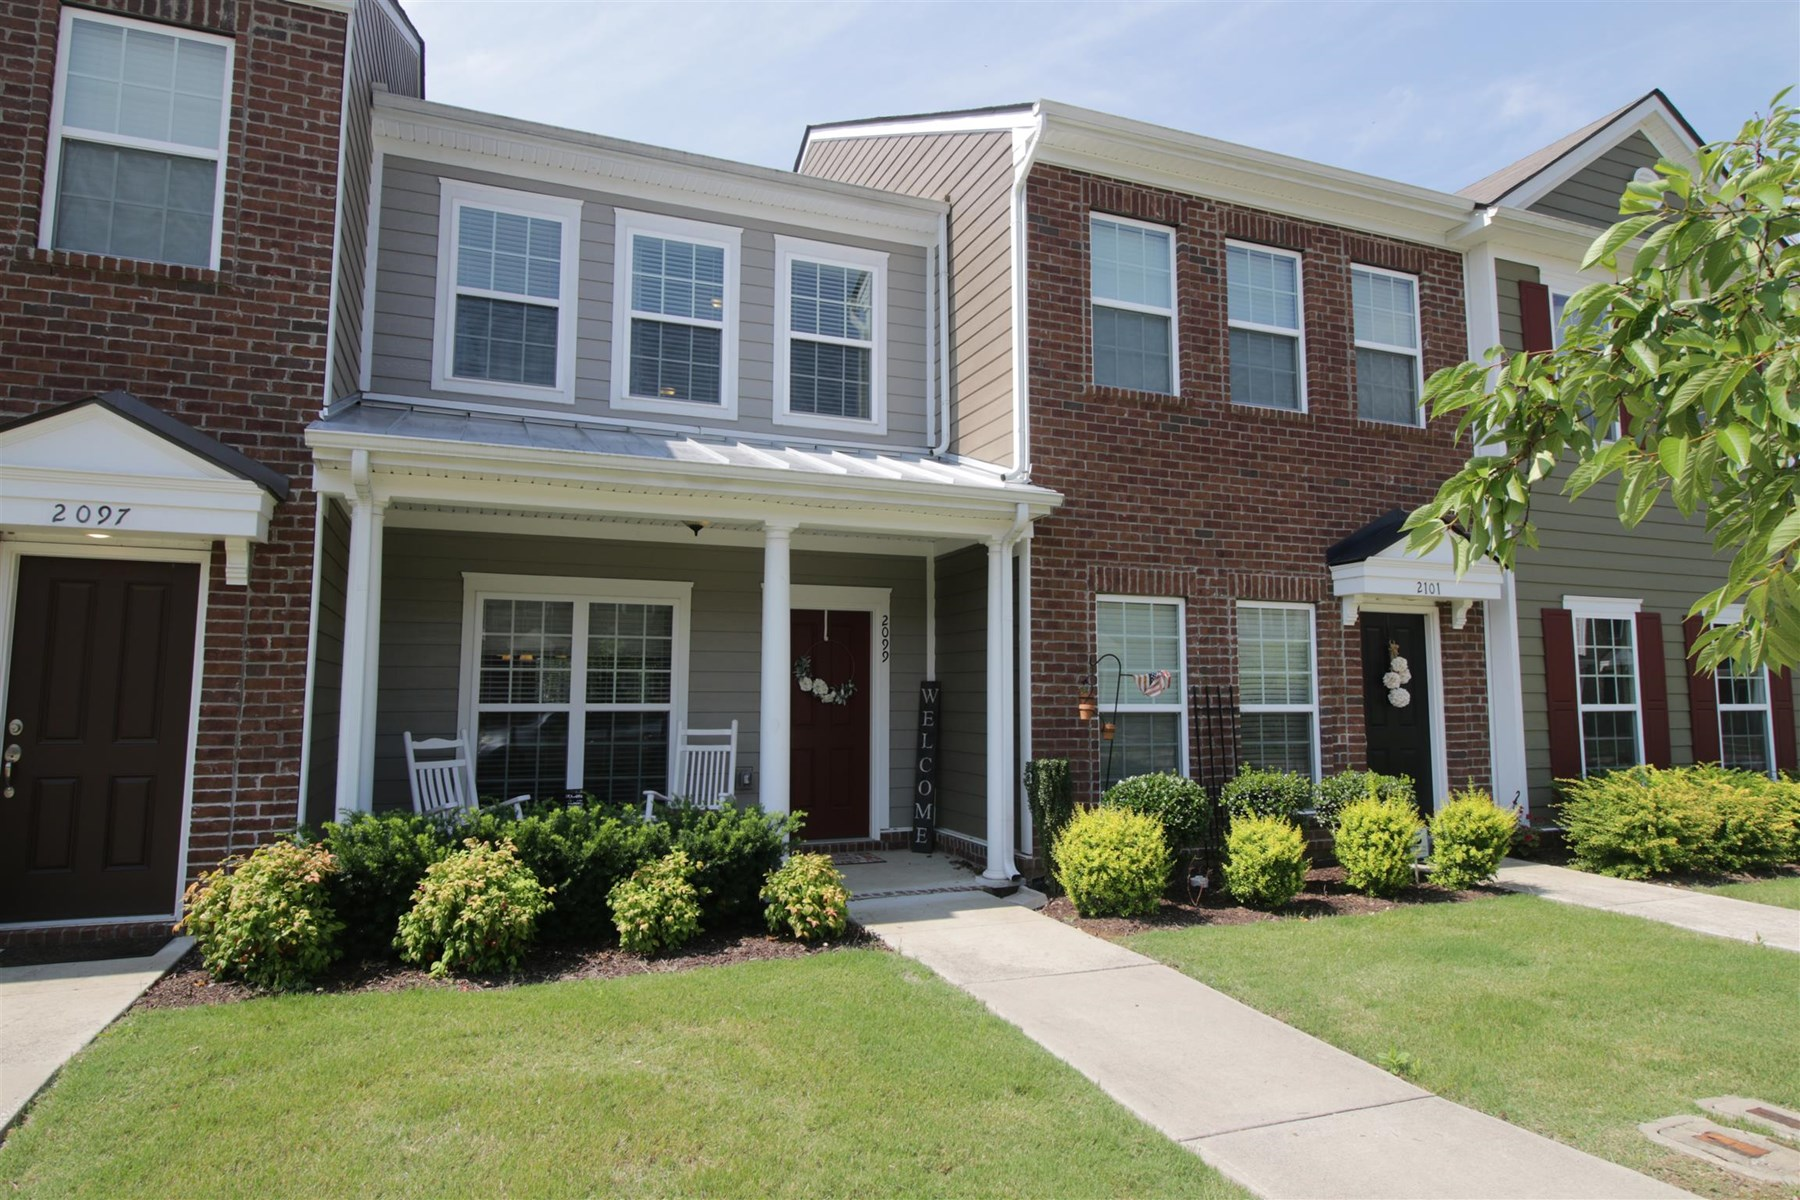 Townhome For Sale in Spring Hill!